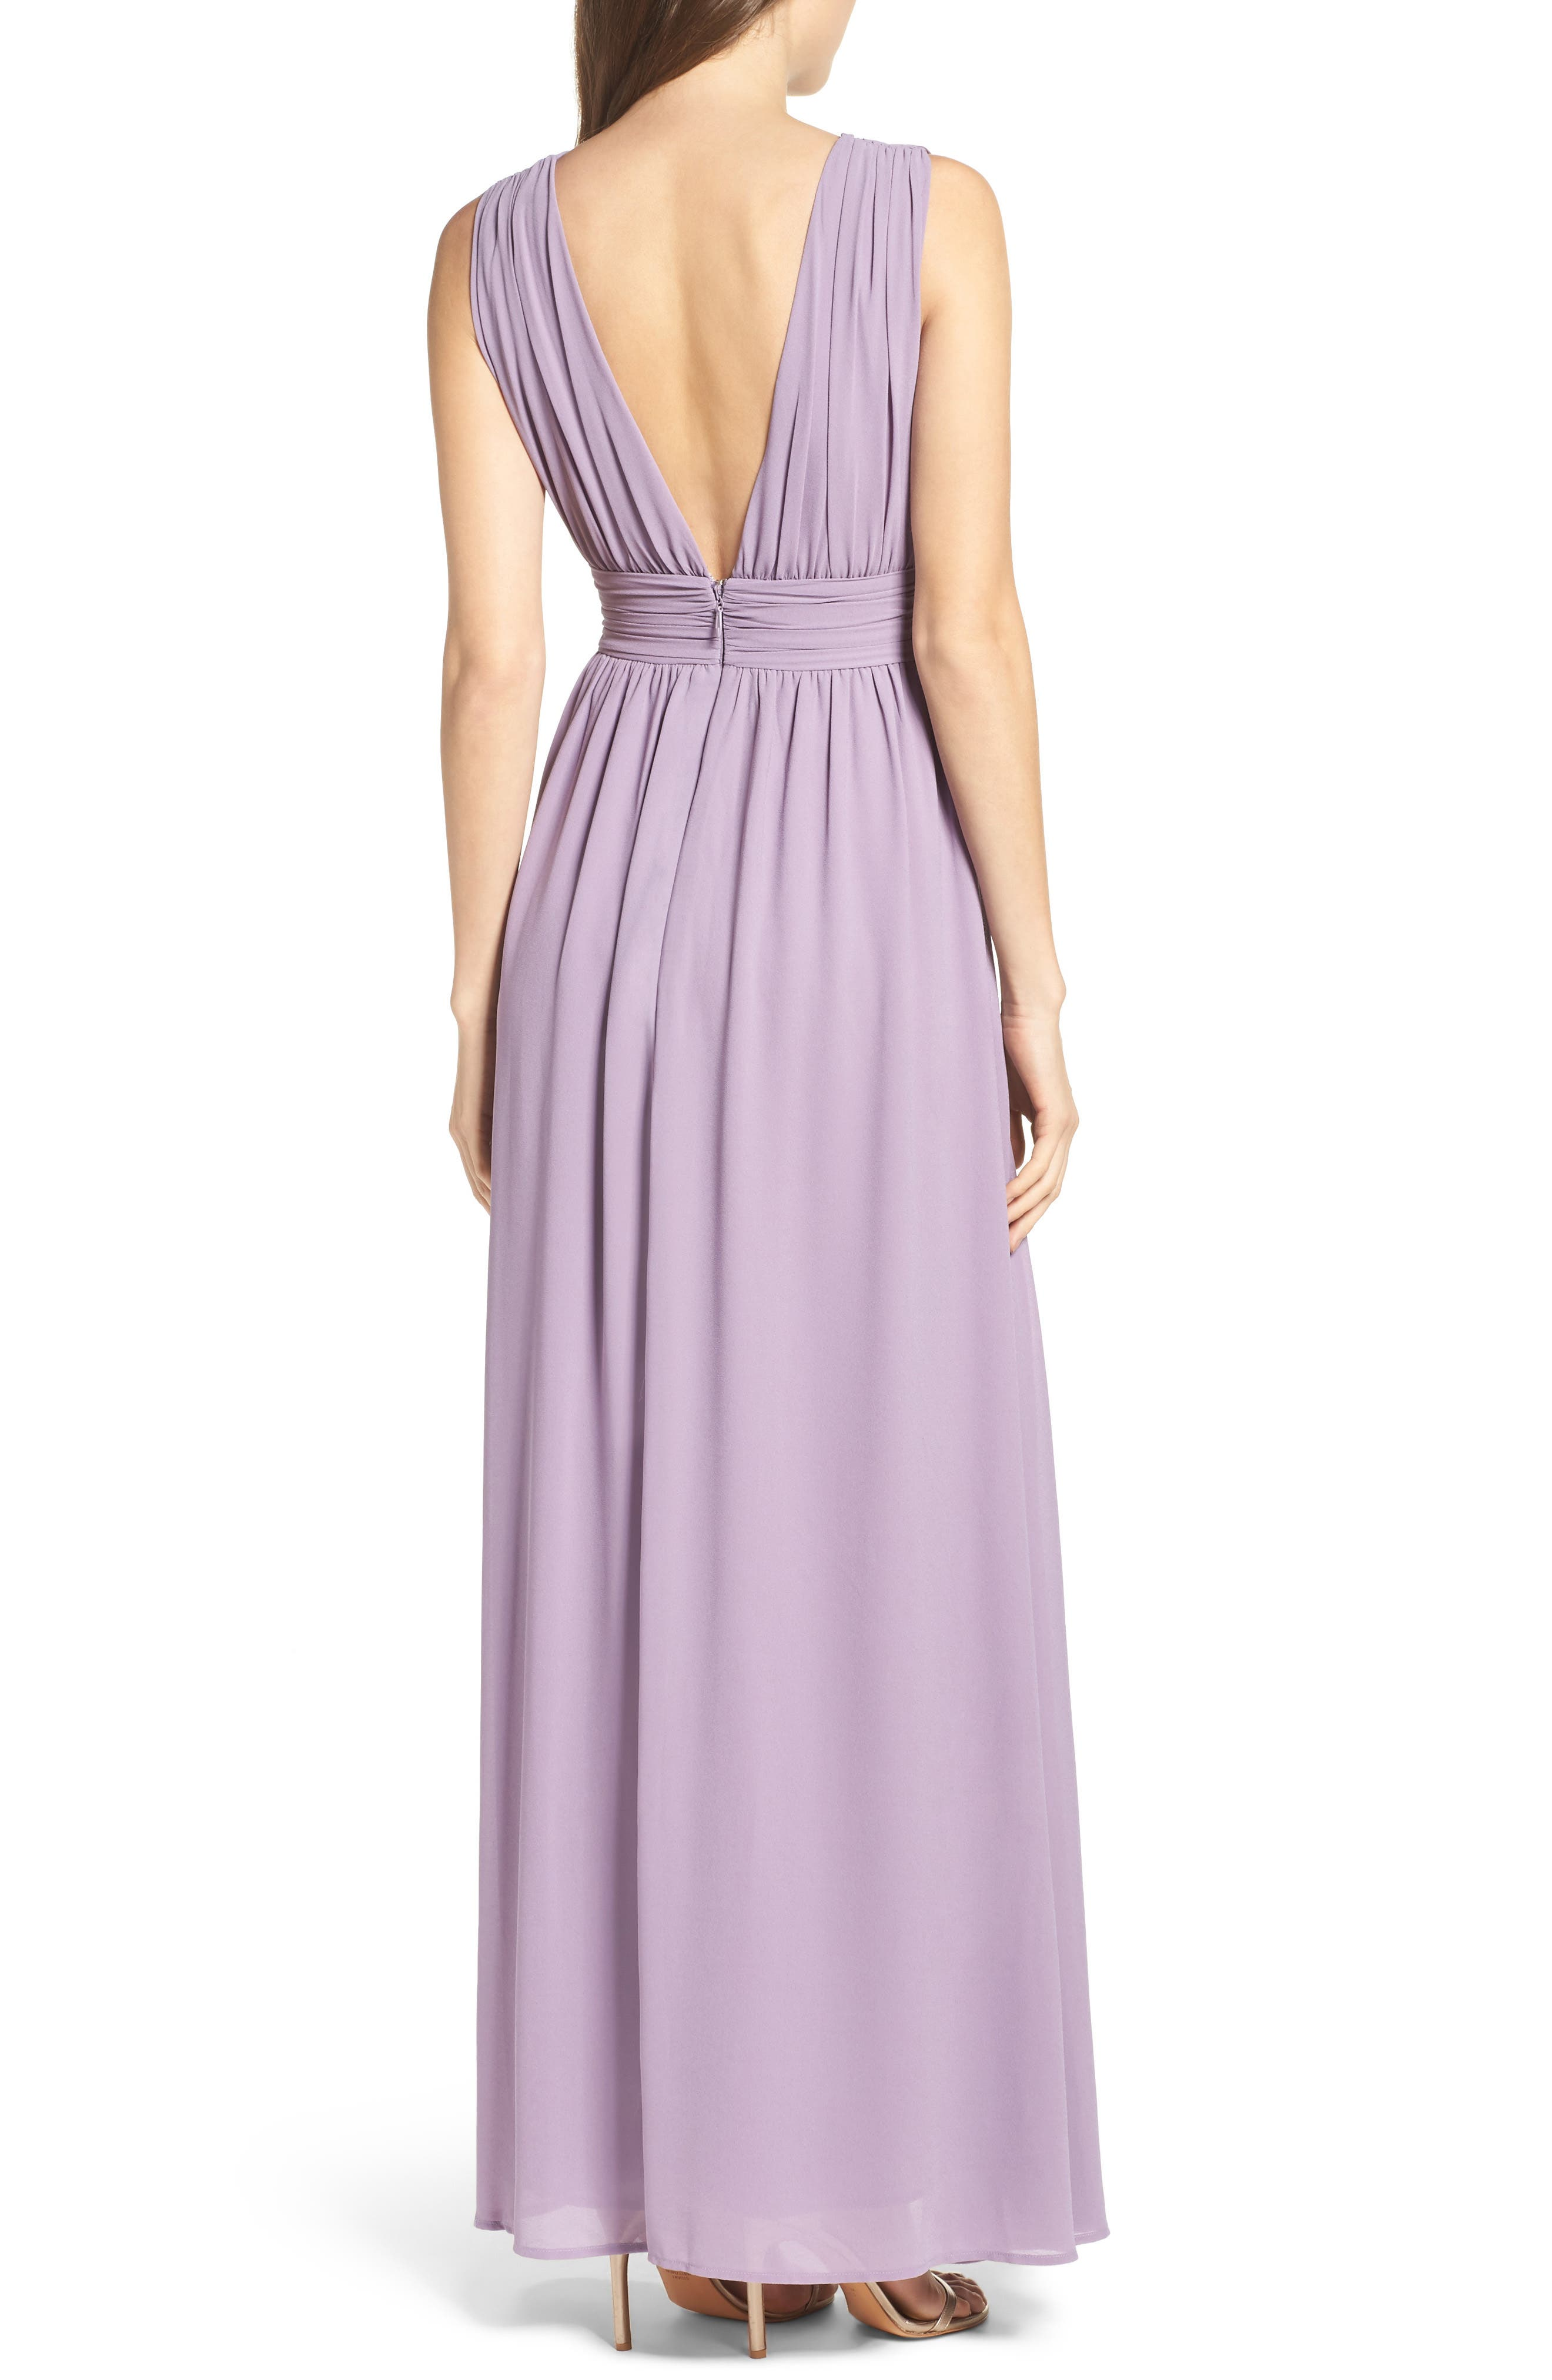 LULUS, Plunging V-Neck Chiffon Gown, Alternate thumbnail 2, color, DUSTY VIOLET